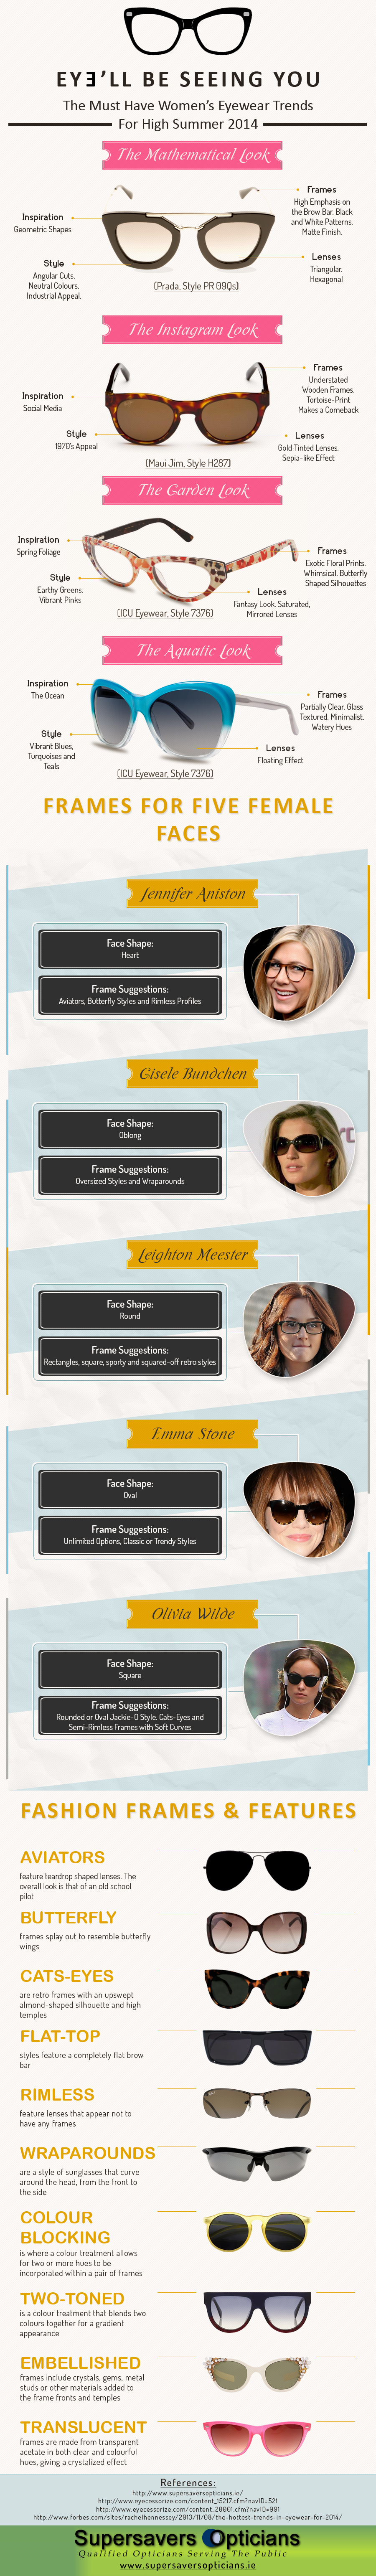 Must Have Women's Eyewear Trends for High Summer 2014